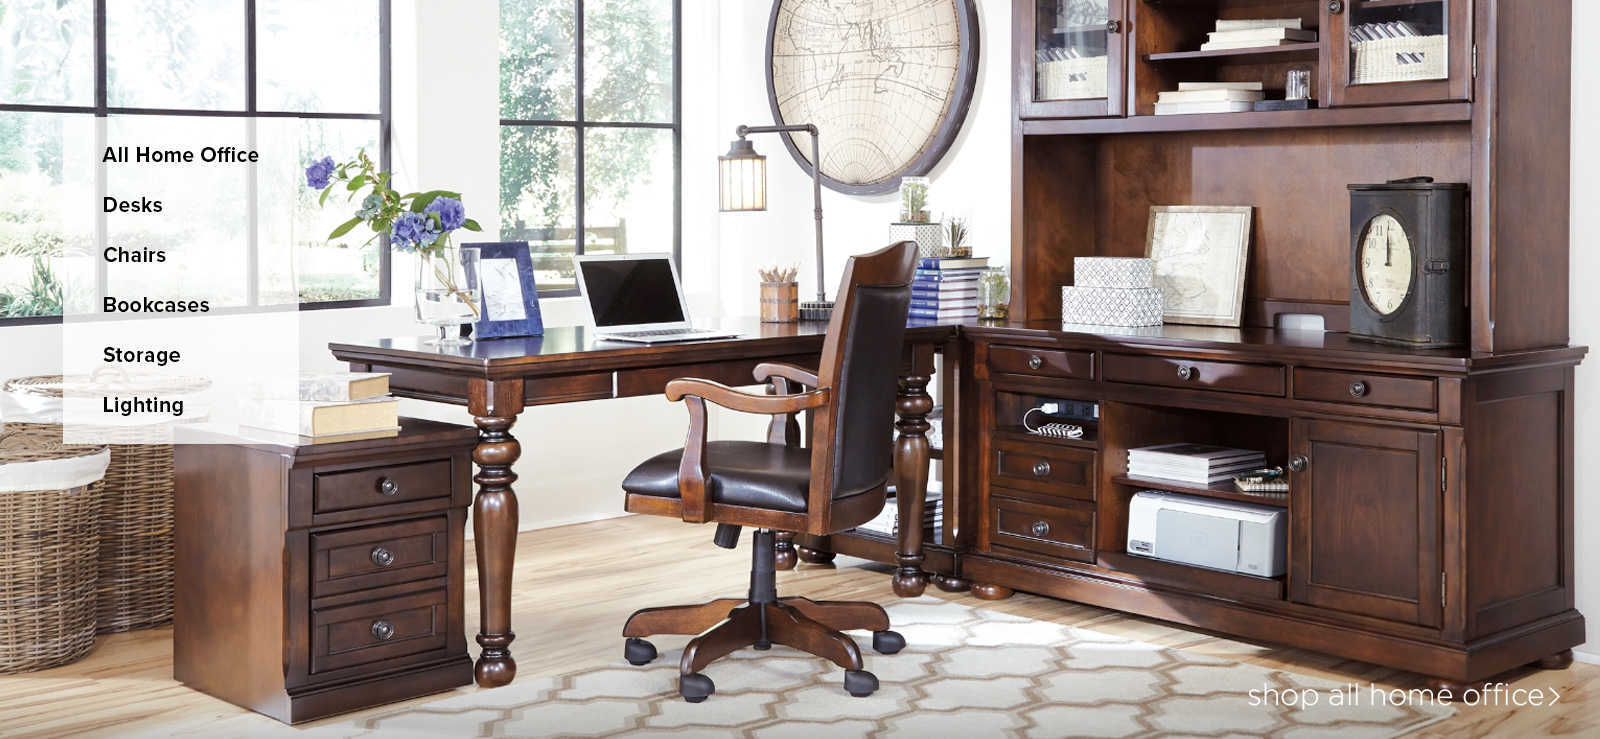 How To Start Your Own Home Office